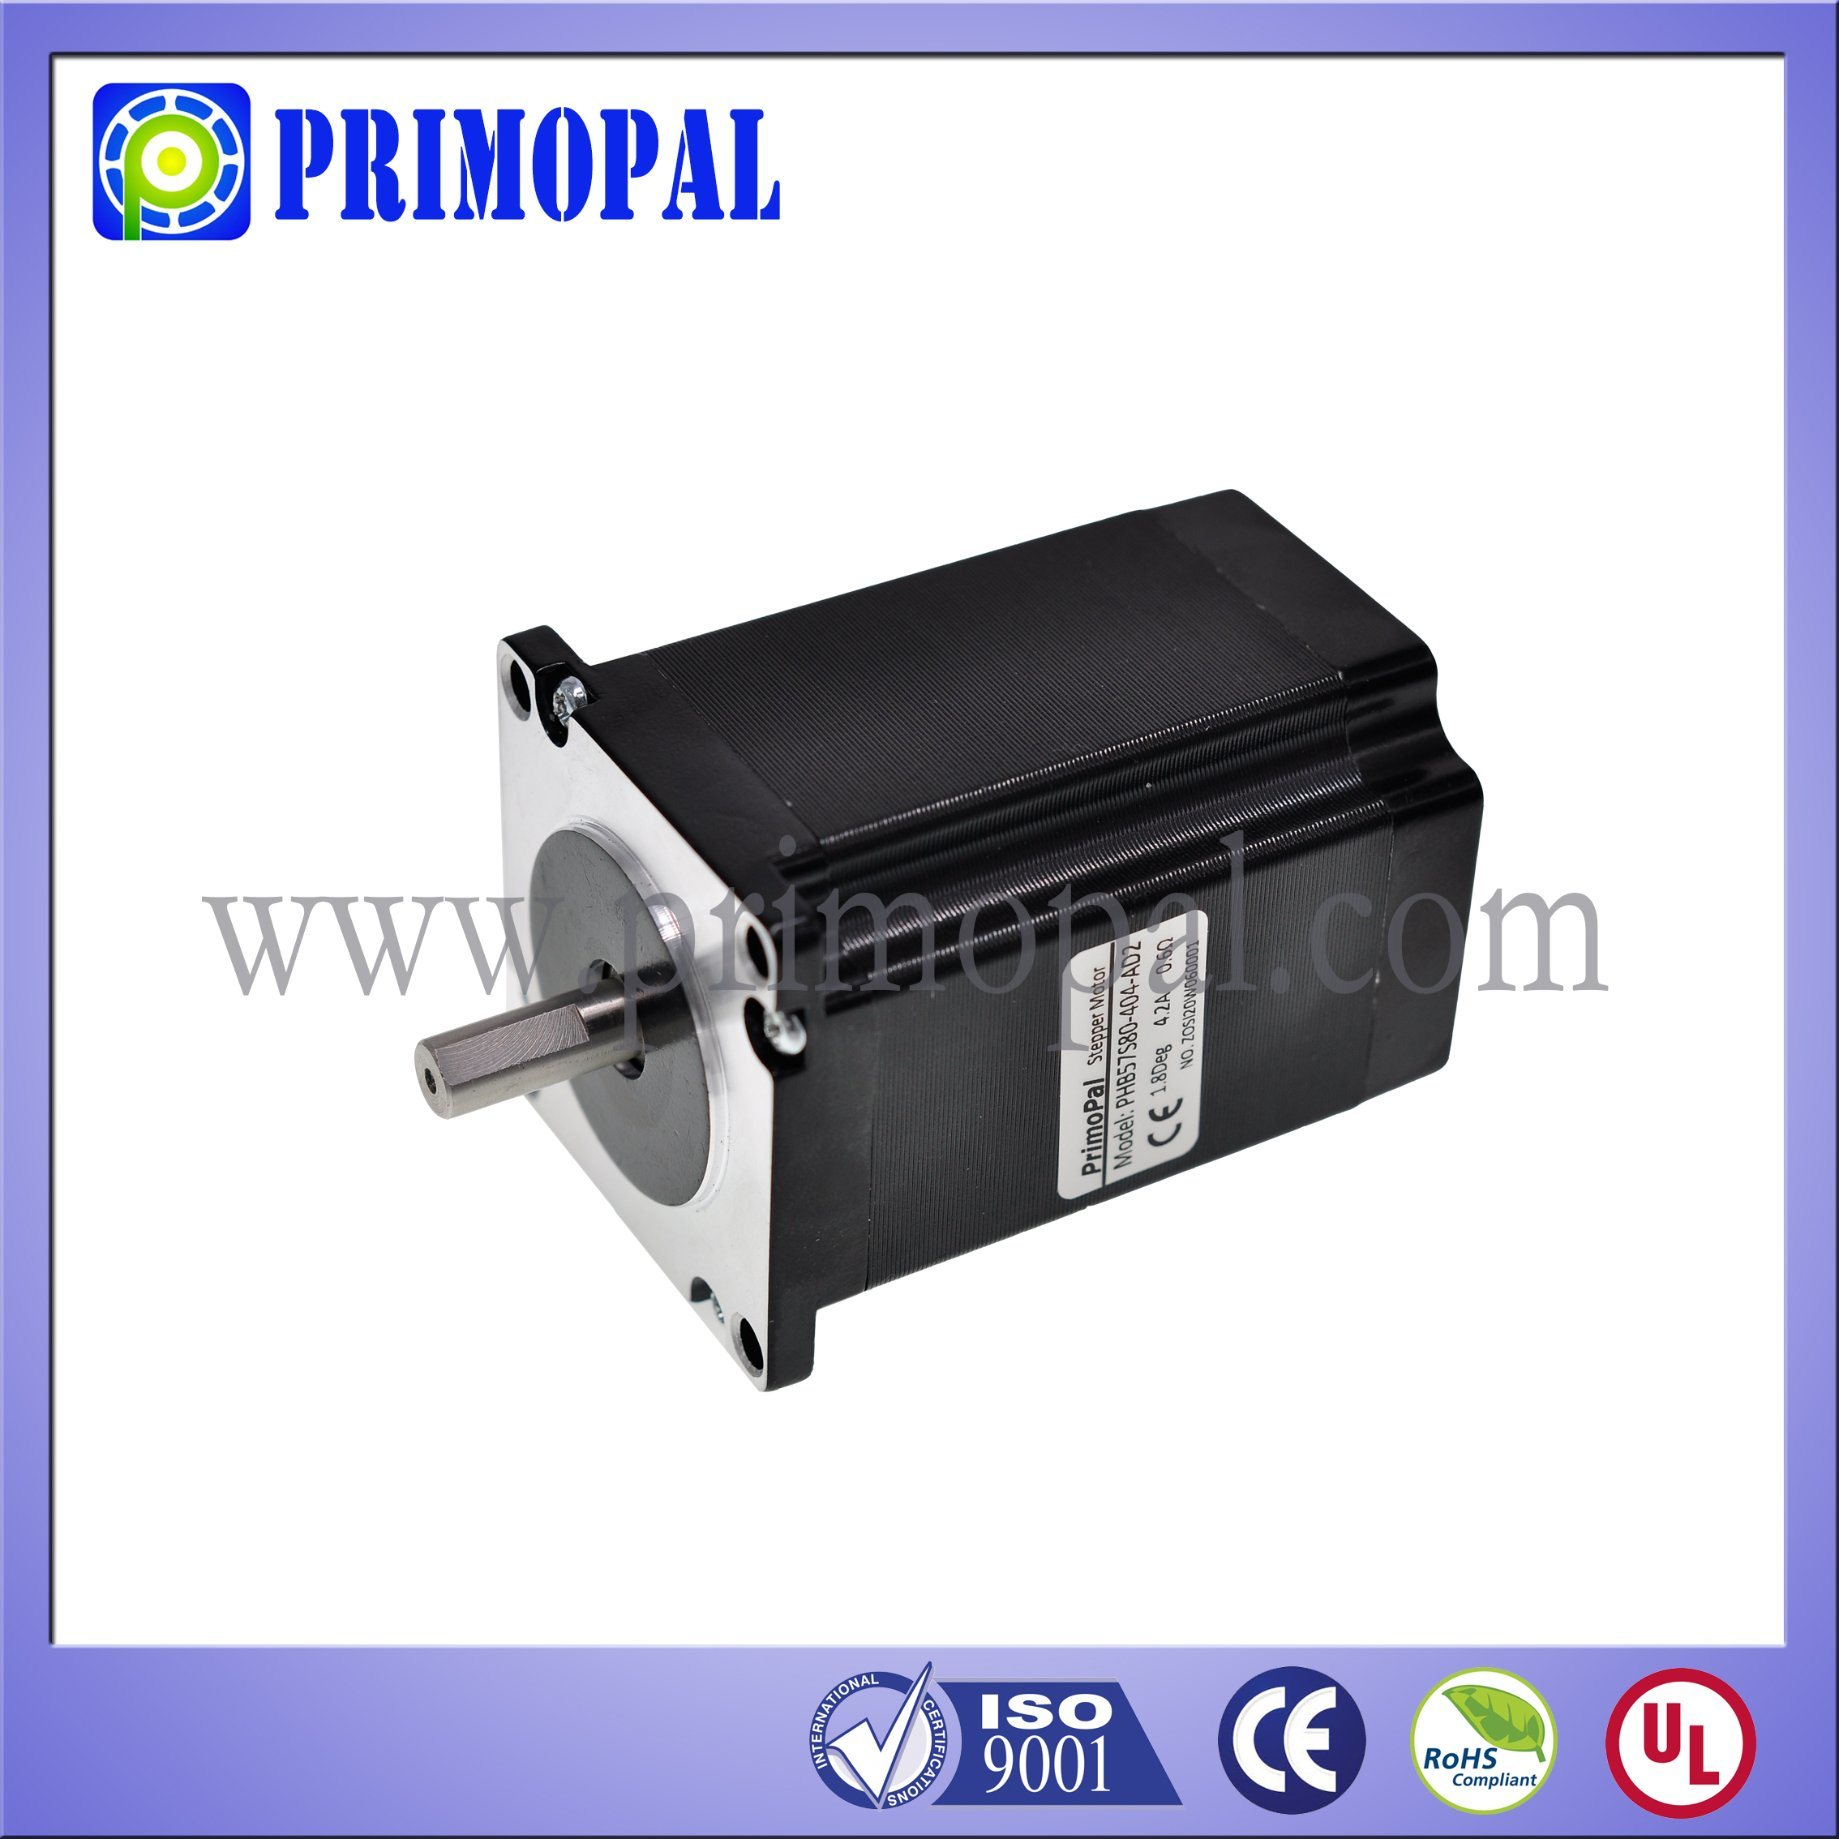 6 Leads 3 Phase NEMA 23 Stepper Motor for CNC Routers